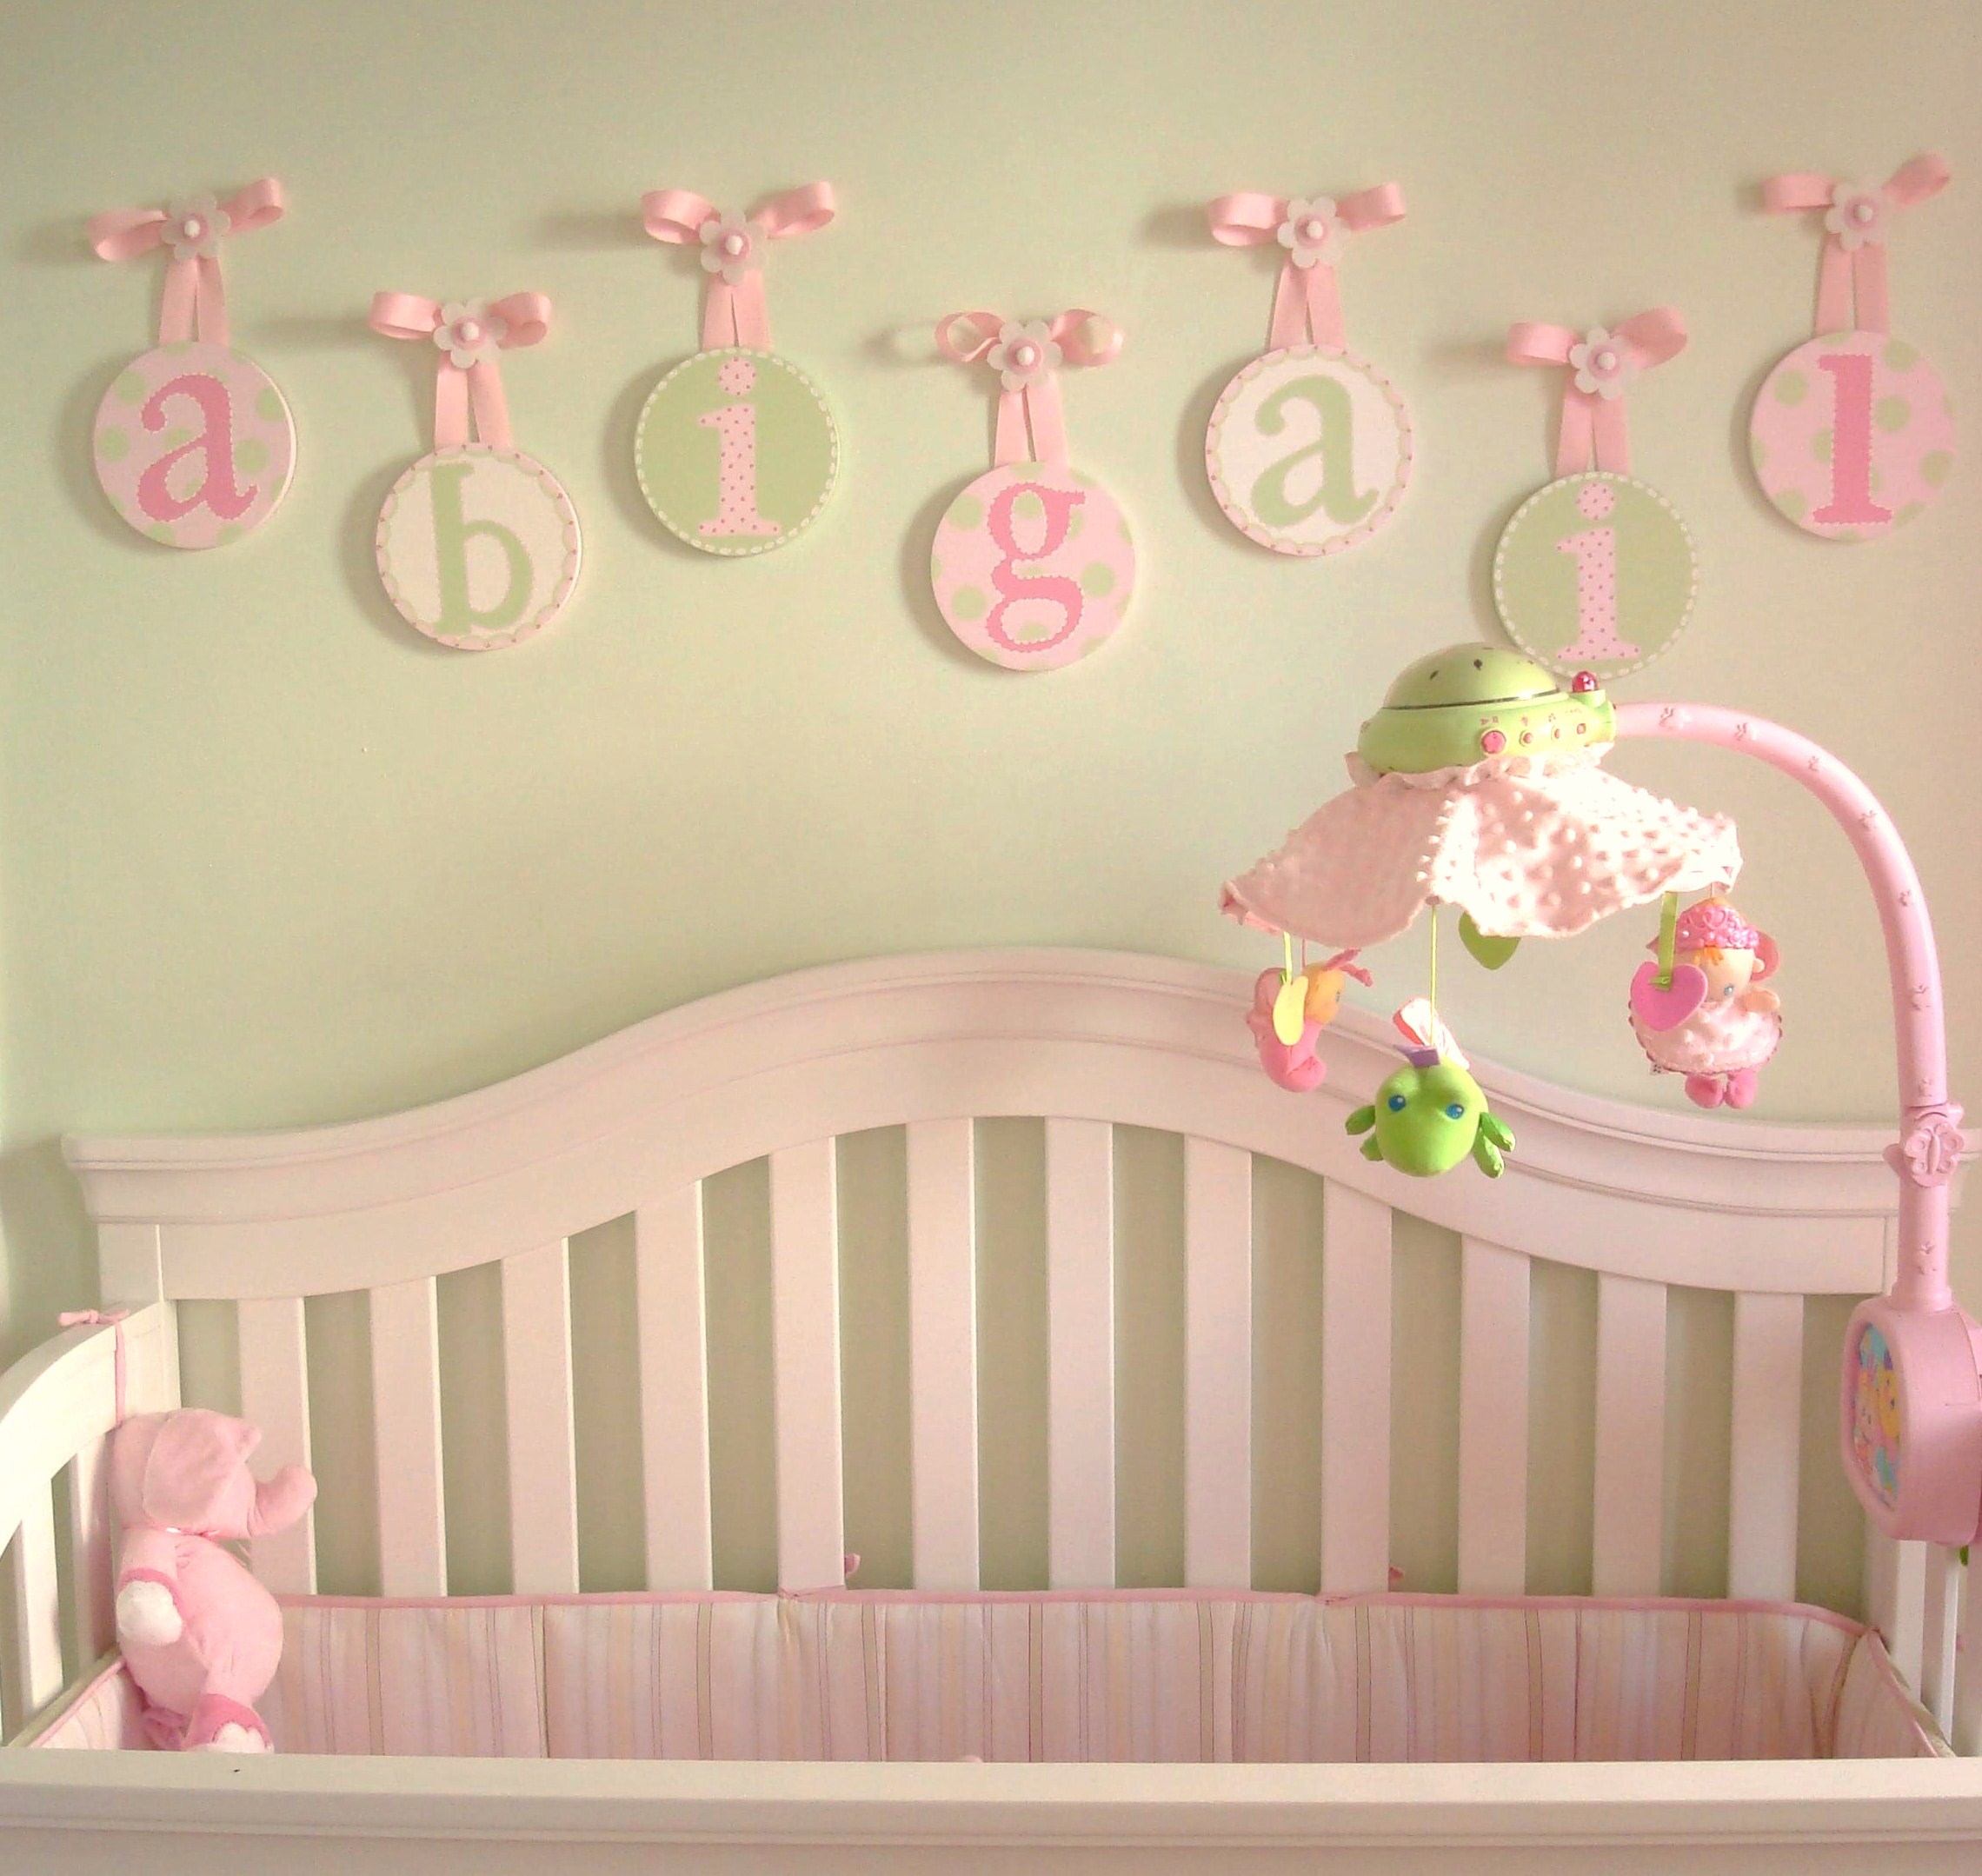 Hanging letters for Baby girl nursery mural